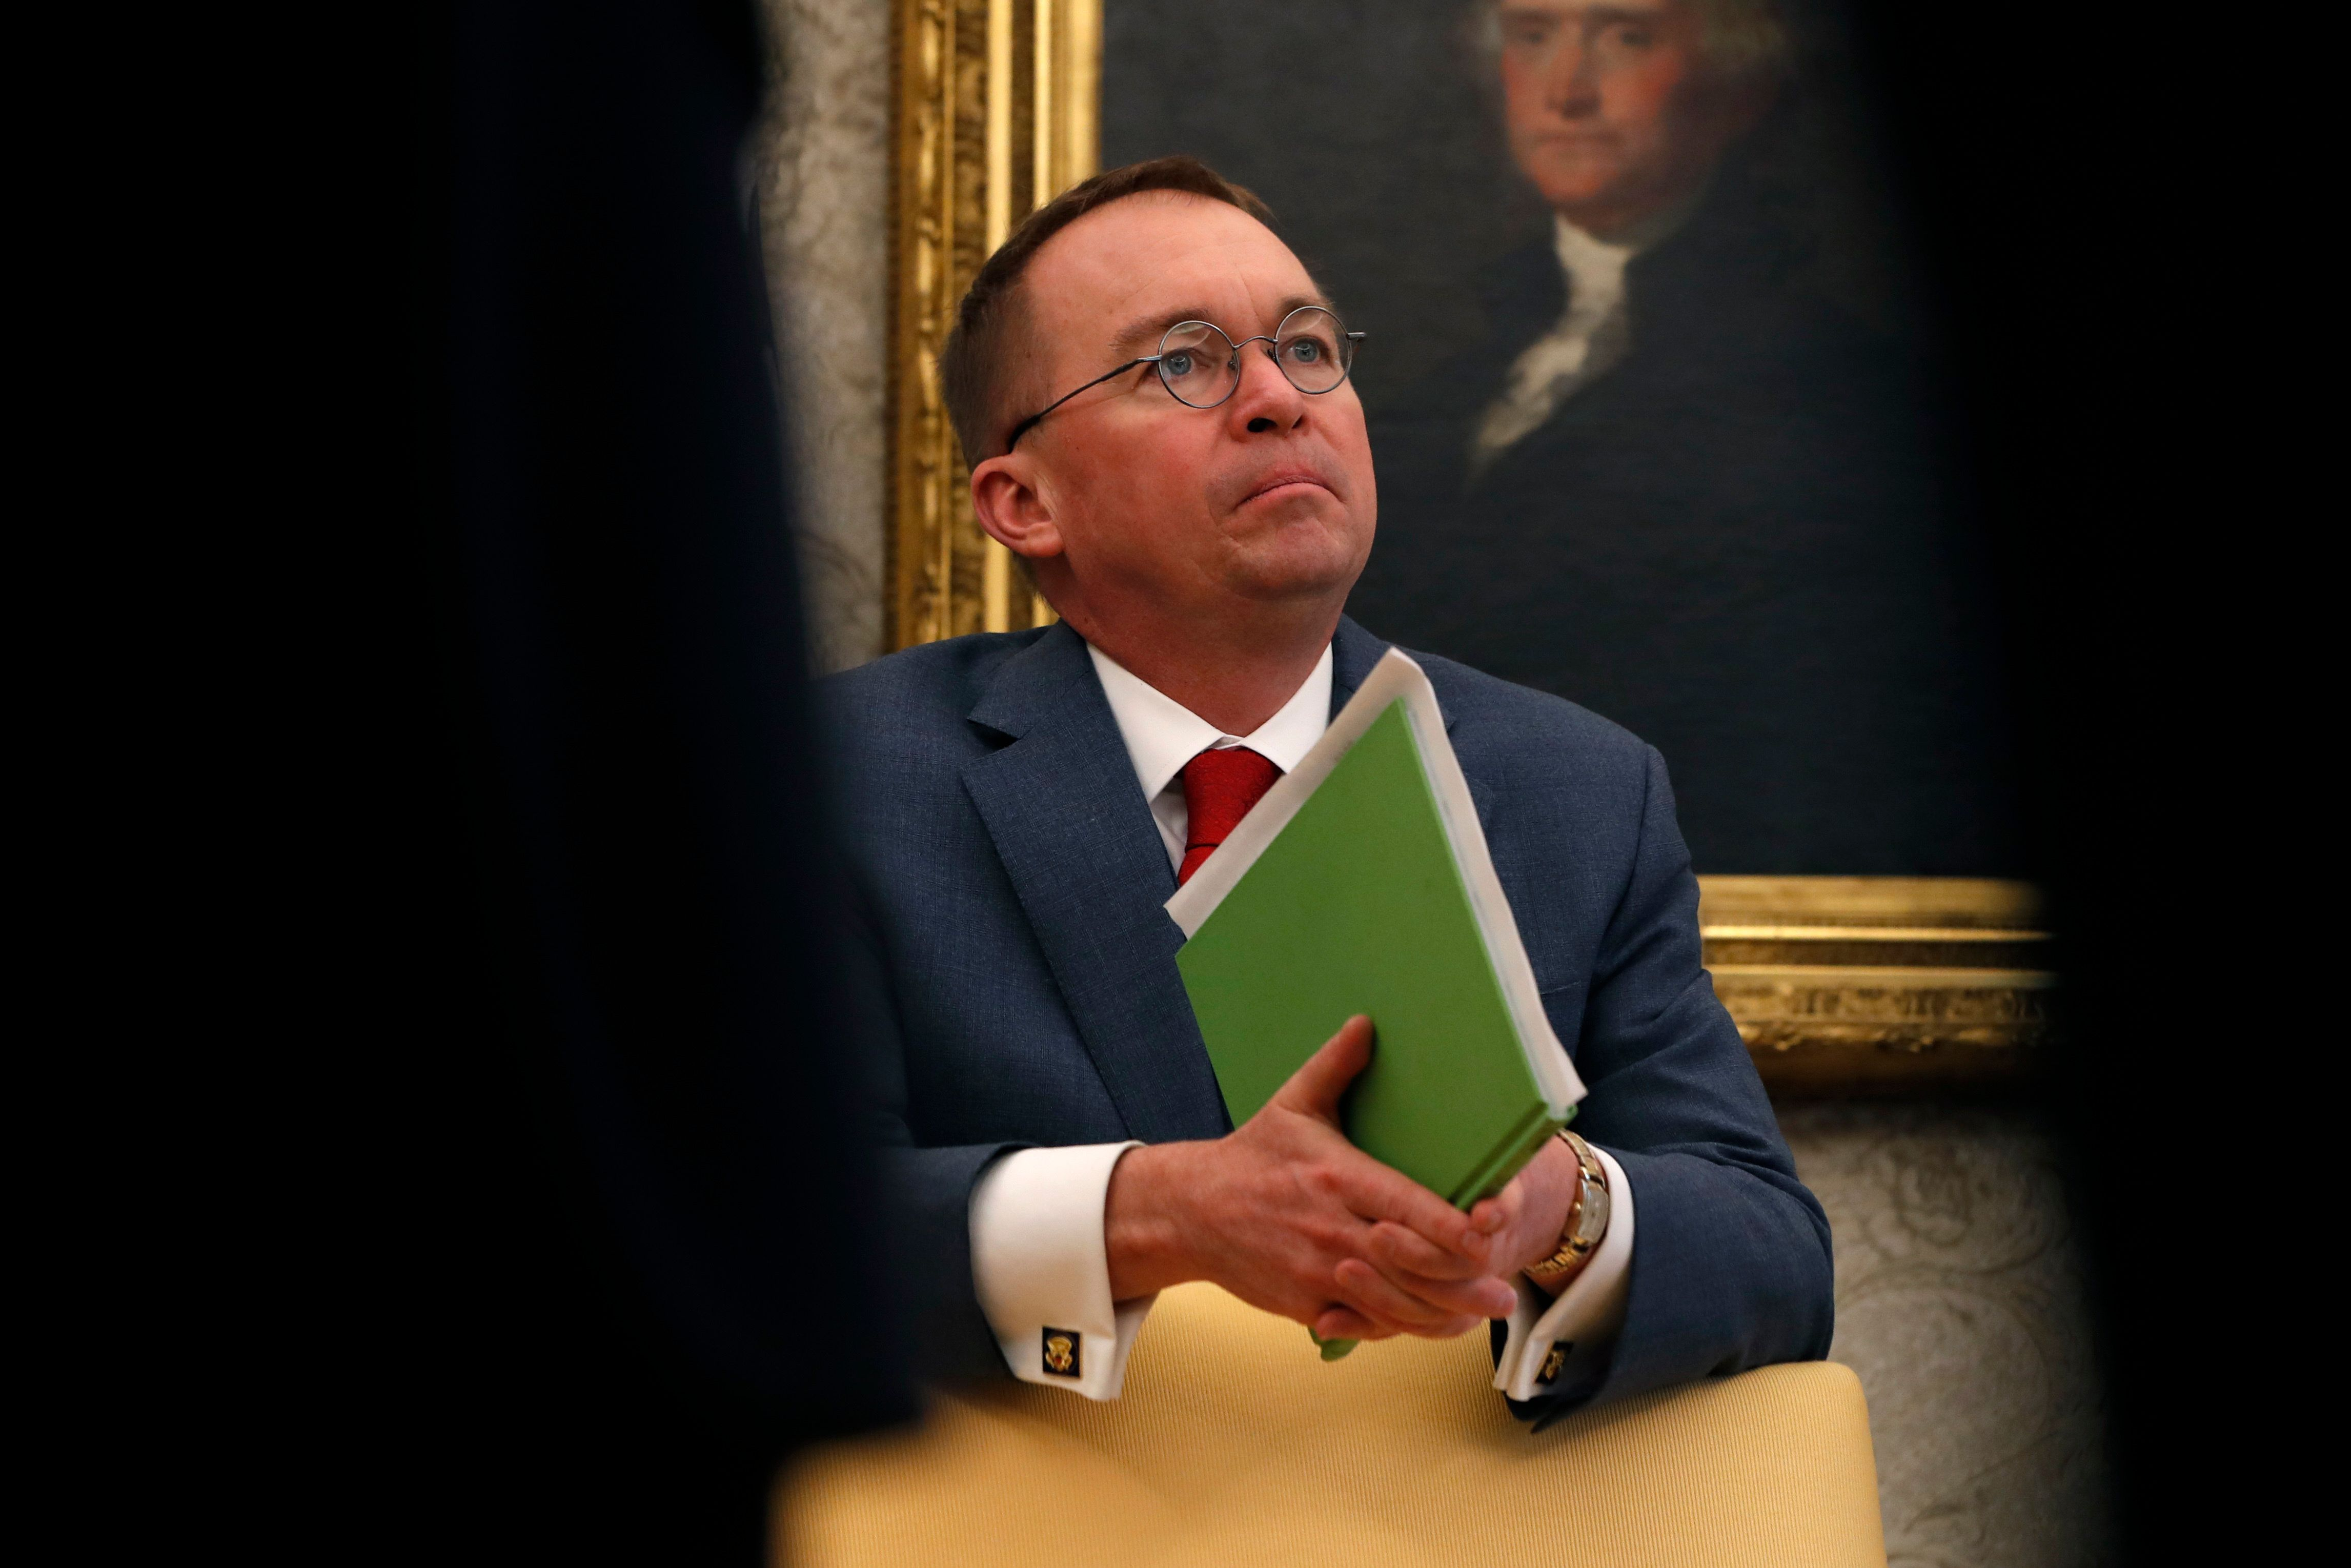 "Acting White House chief of staff Mick Mulvaney listens as President Donald Trump speaks during a meeting with American manufacturers in the Oval Office of the White House, Thursday, Jan. 31, 2019, in Washington. Trump was signing an executive order pushing those who receive federal funds to ""buy American."" (AP Photo/Jacquelyn Martin)"